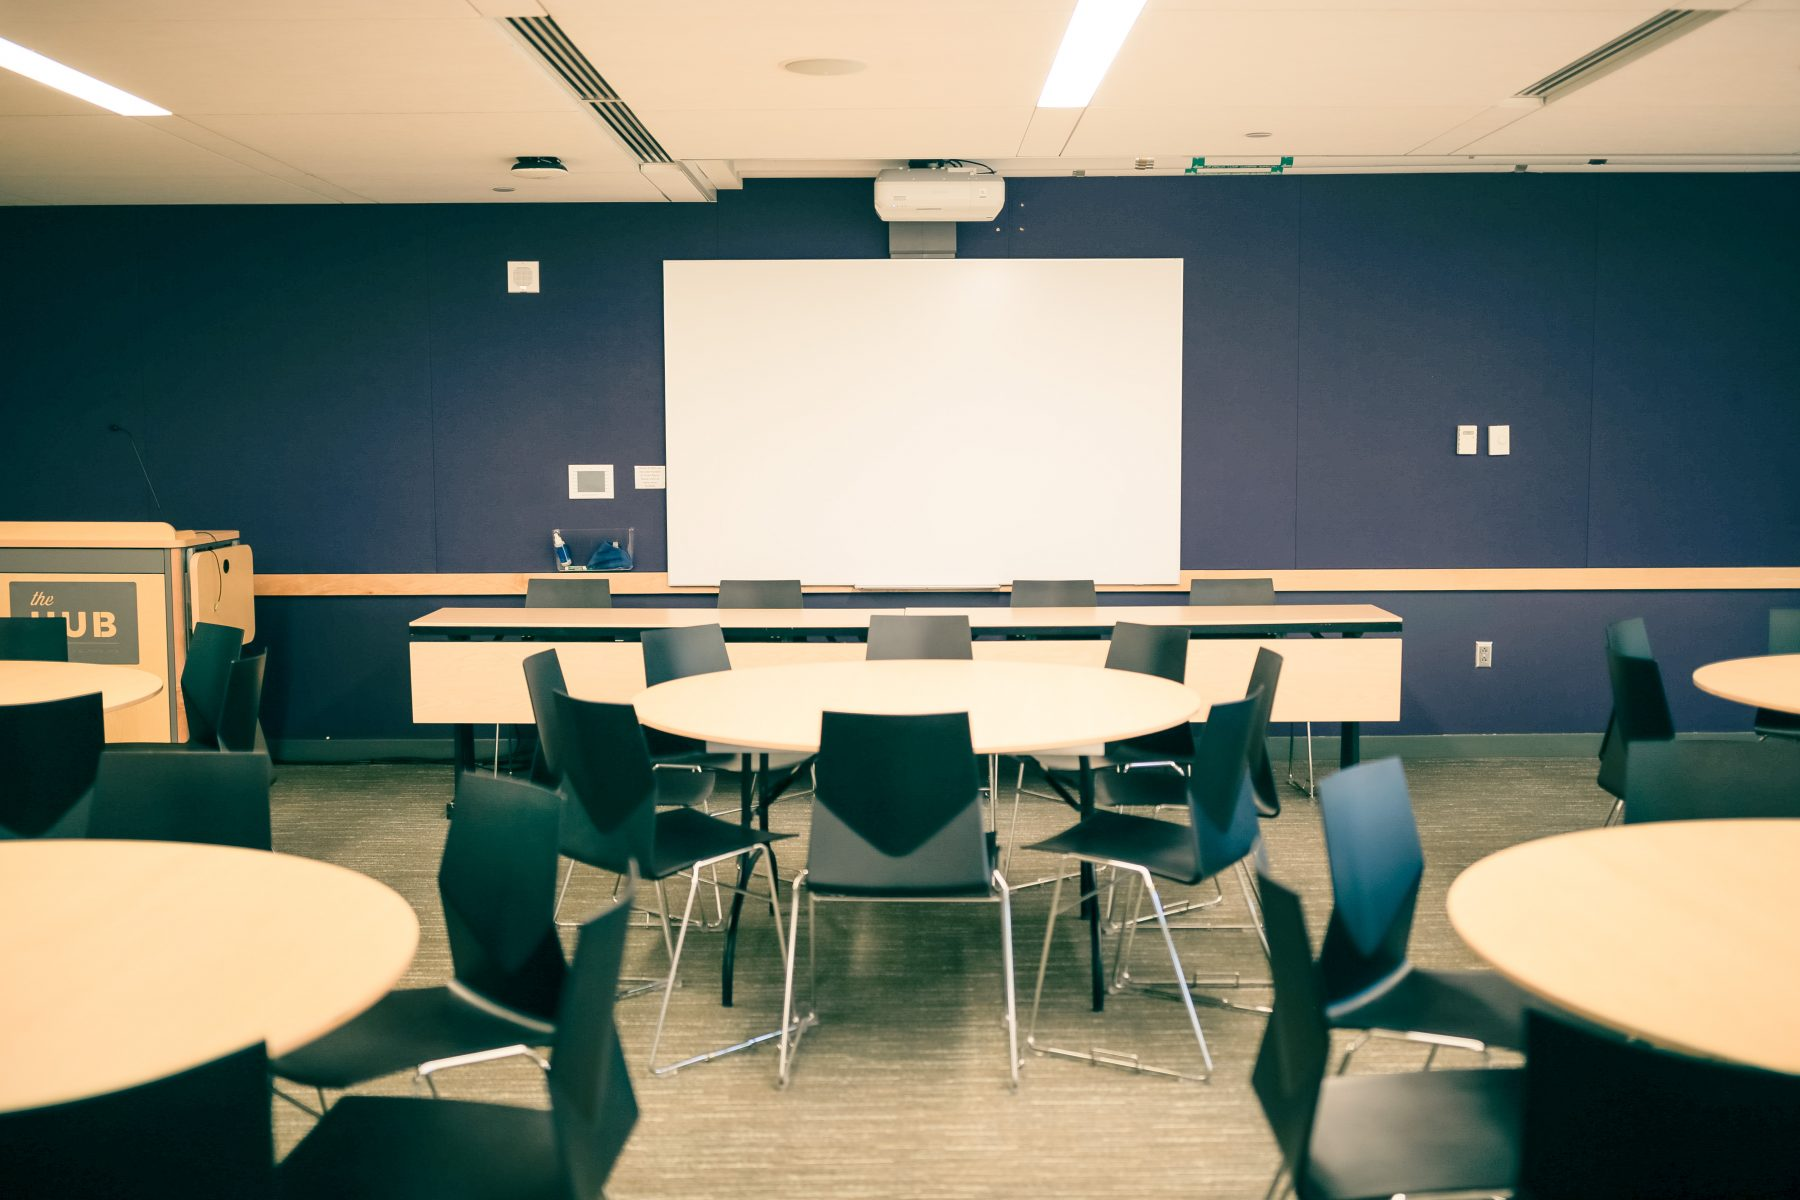 An installed projector and whiteboard are included with rental